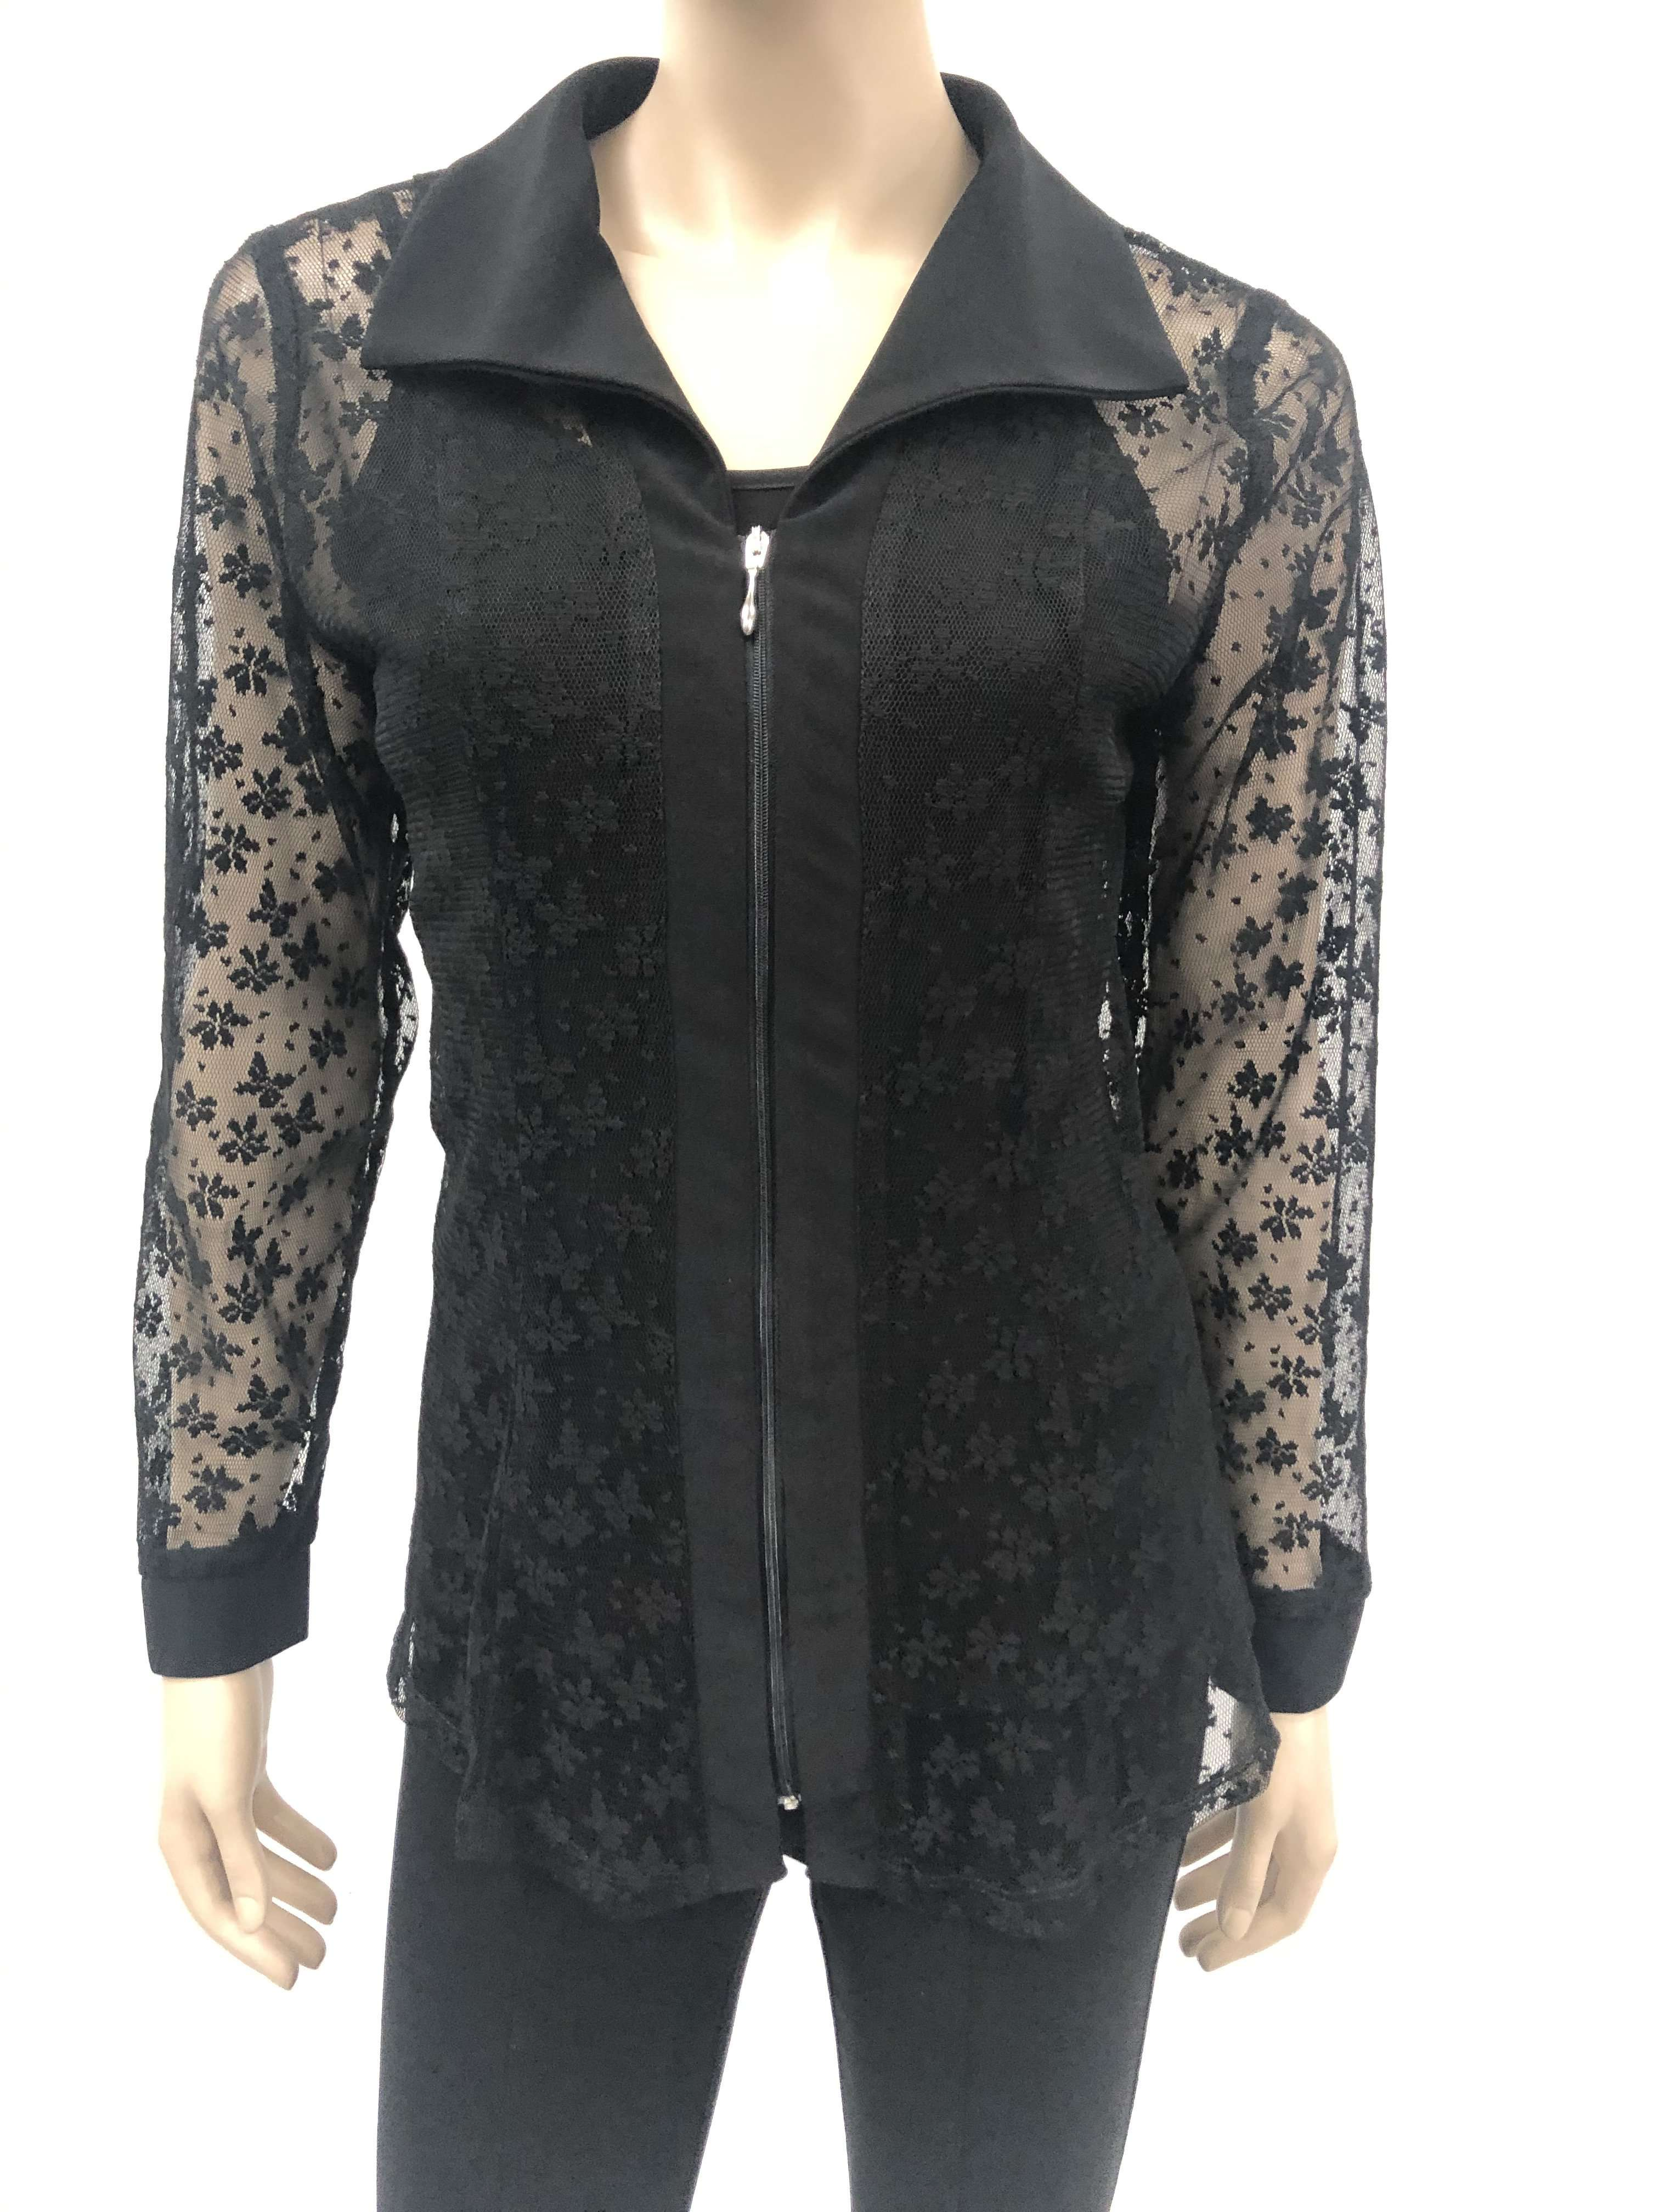 Womens Blouses Canada | Black Lace Blouse | Special Occasion | Ym Style - Yvonne Marie